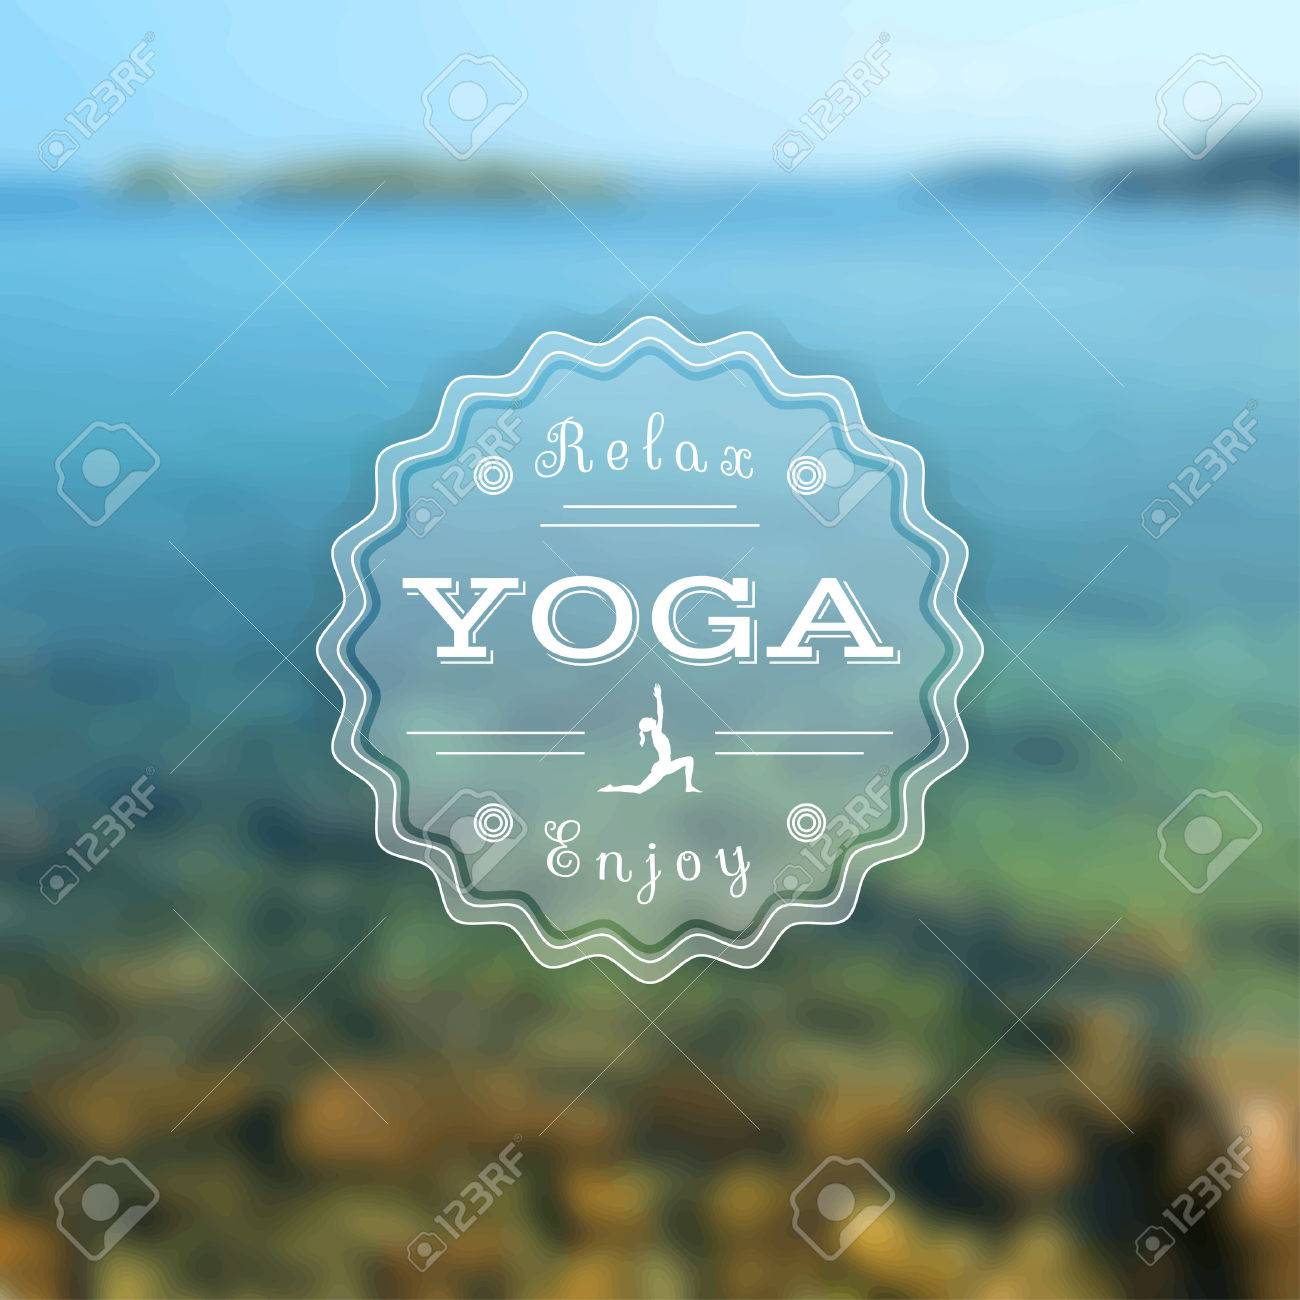 Name Of Yoga Studio On A Sunset Background Class Motto Sticker Vector Exercises Recreation Healthy Lifestyle Poster For